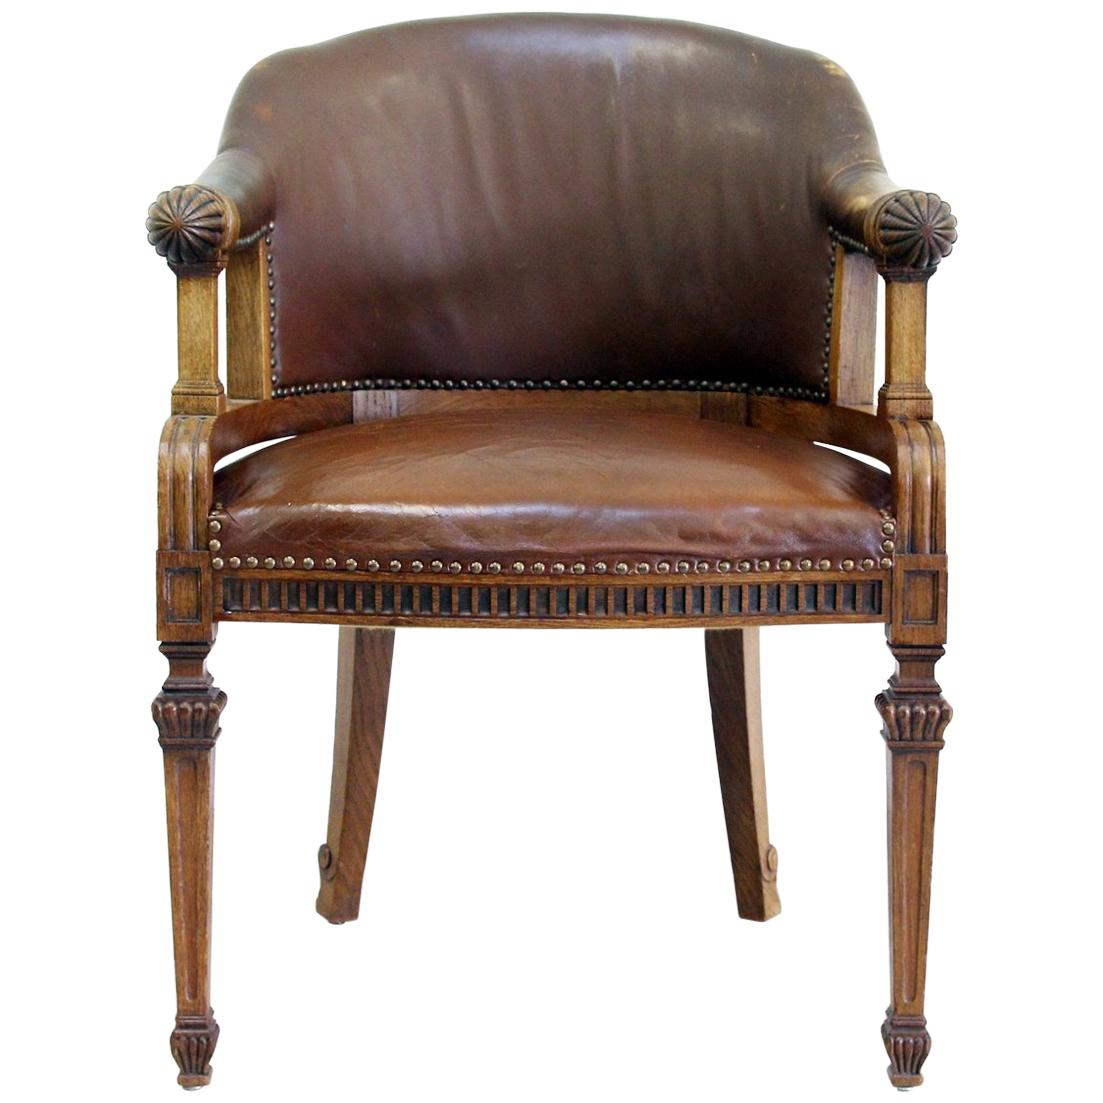 Office Chair Antique Early Days Armchair Office Armchair Leather Vintage  Chair For Sale at 1stdibs